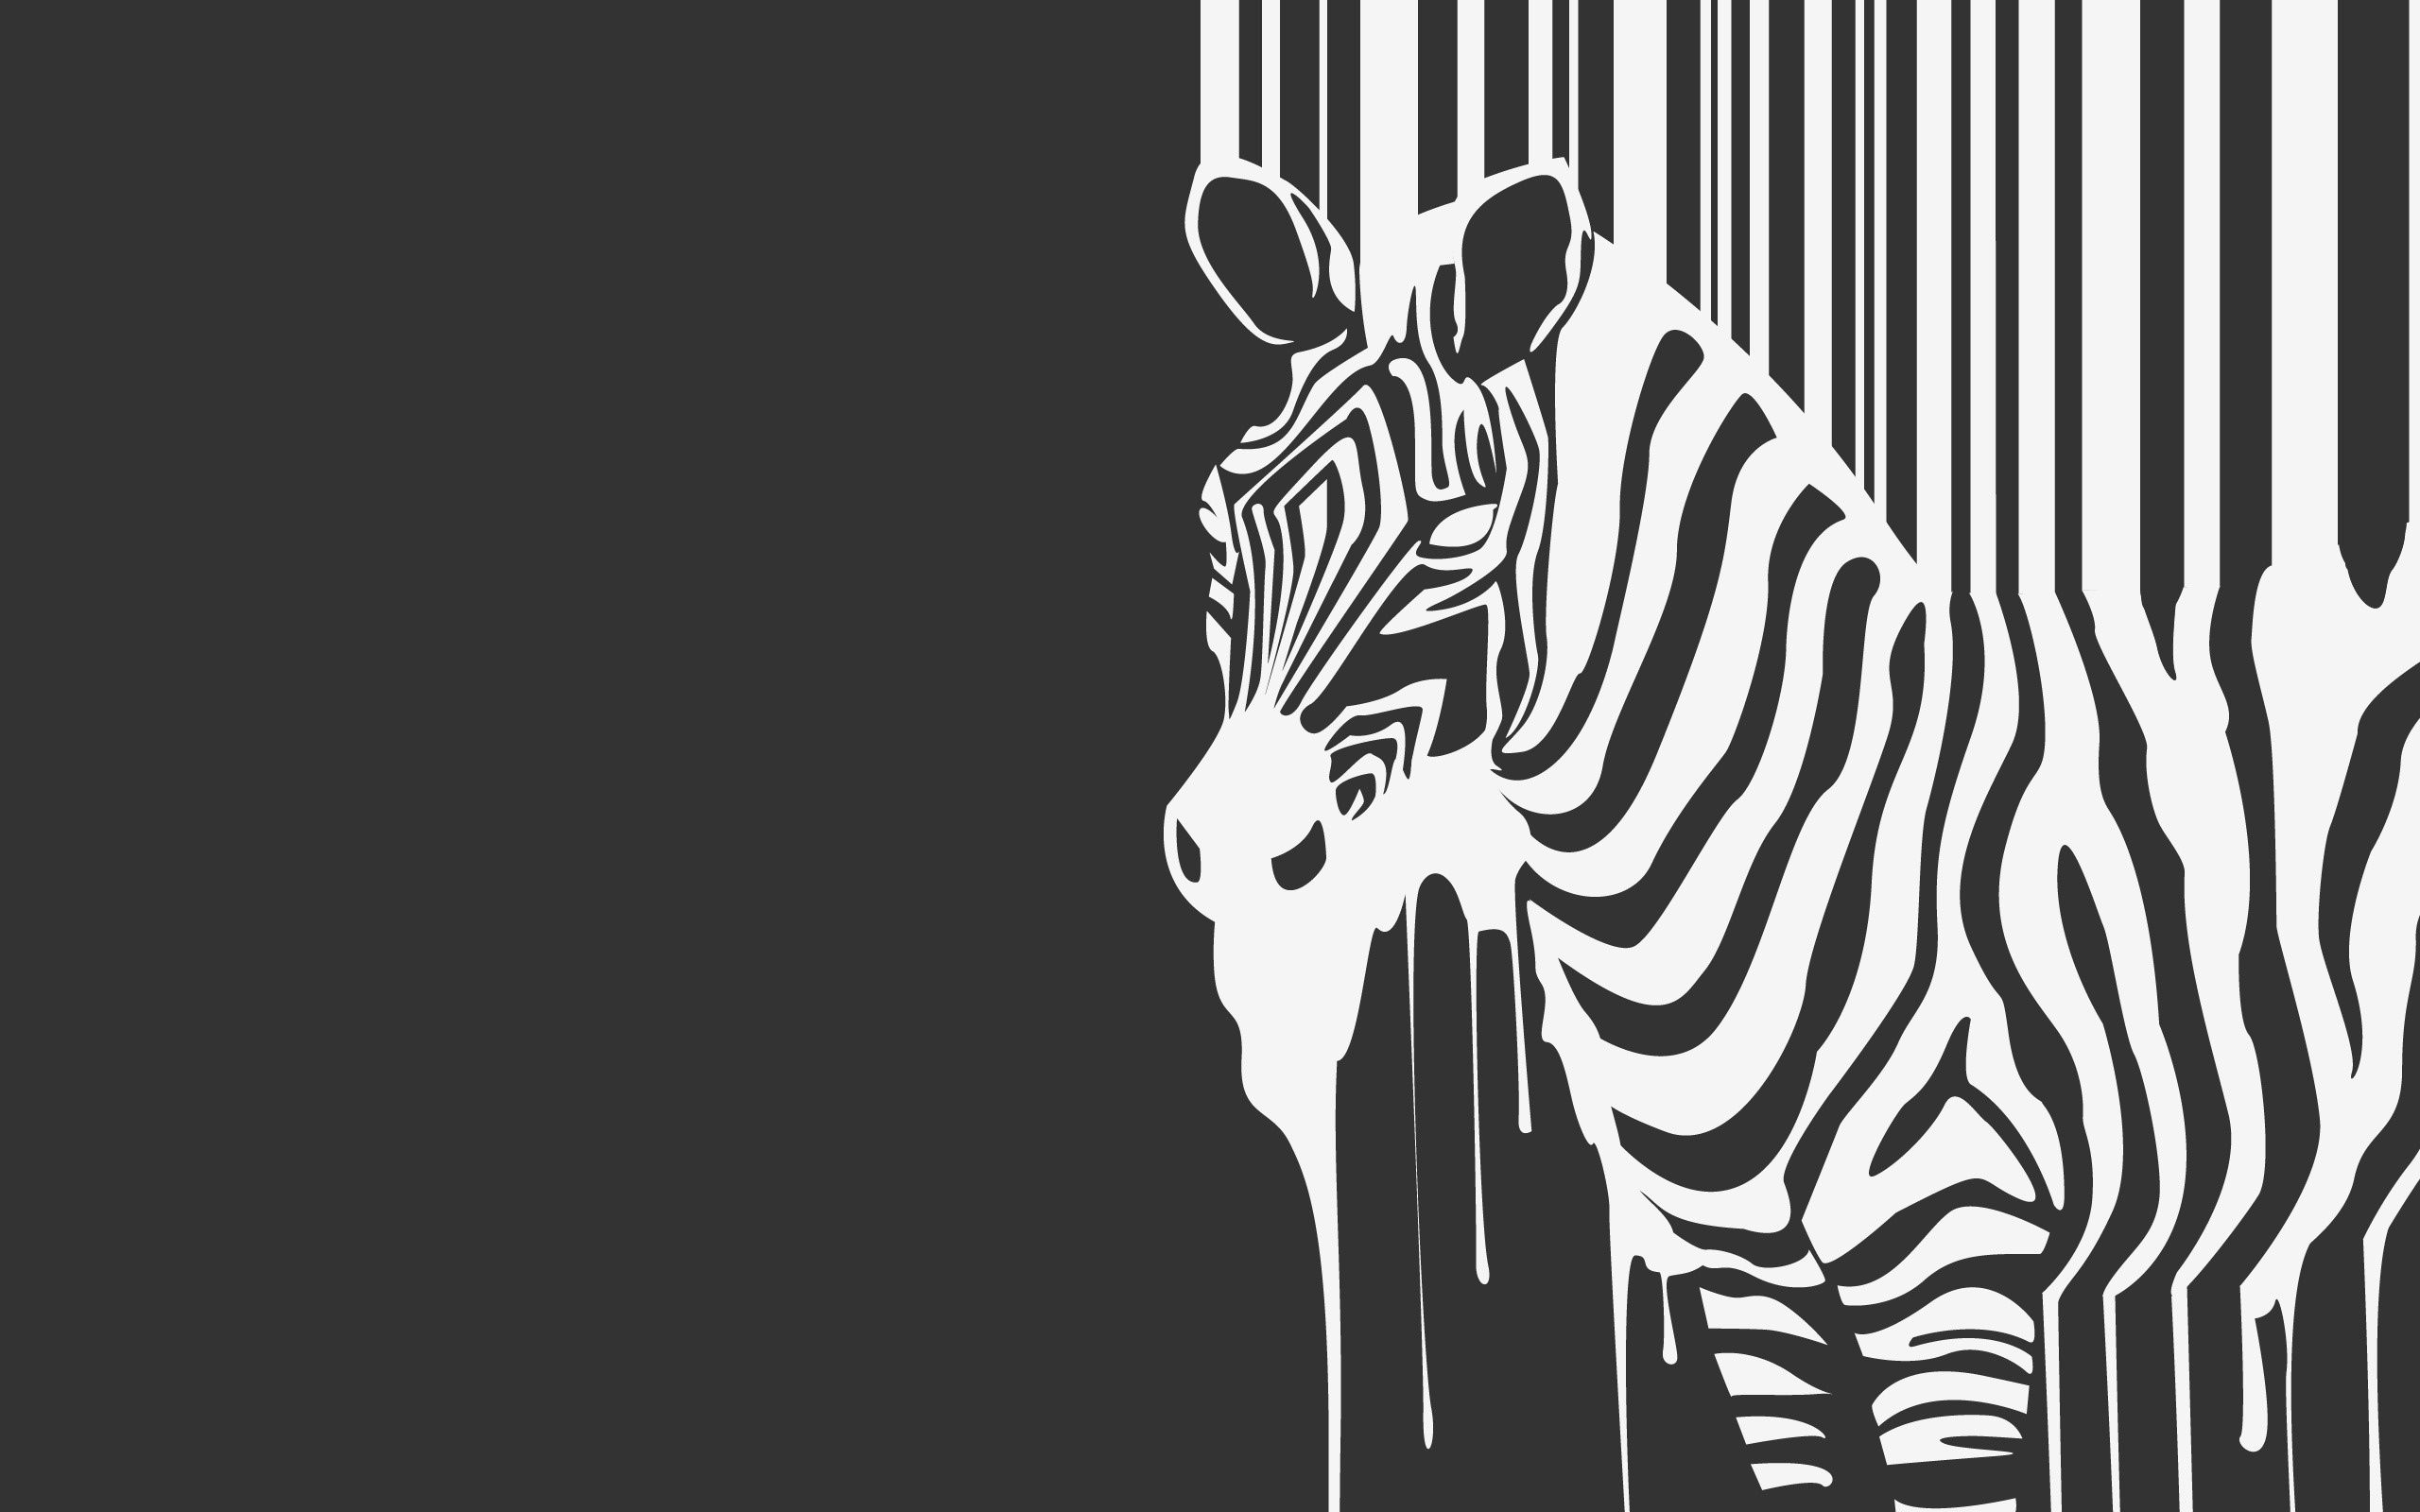 97867 download wallpaper Minimalism, Stripes, Strips, Beast, Zebra, Flowing, Flows screensavers and pictures for free